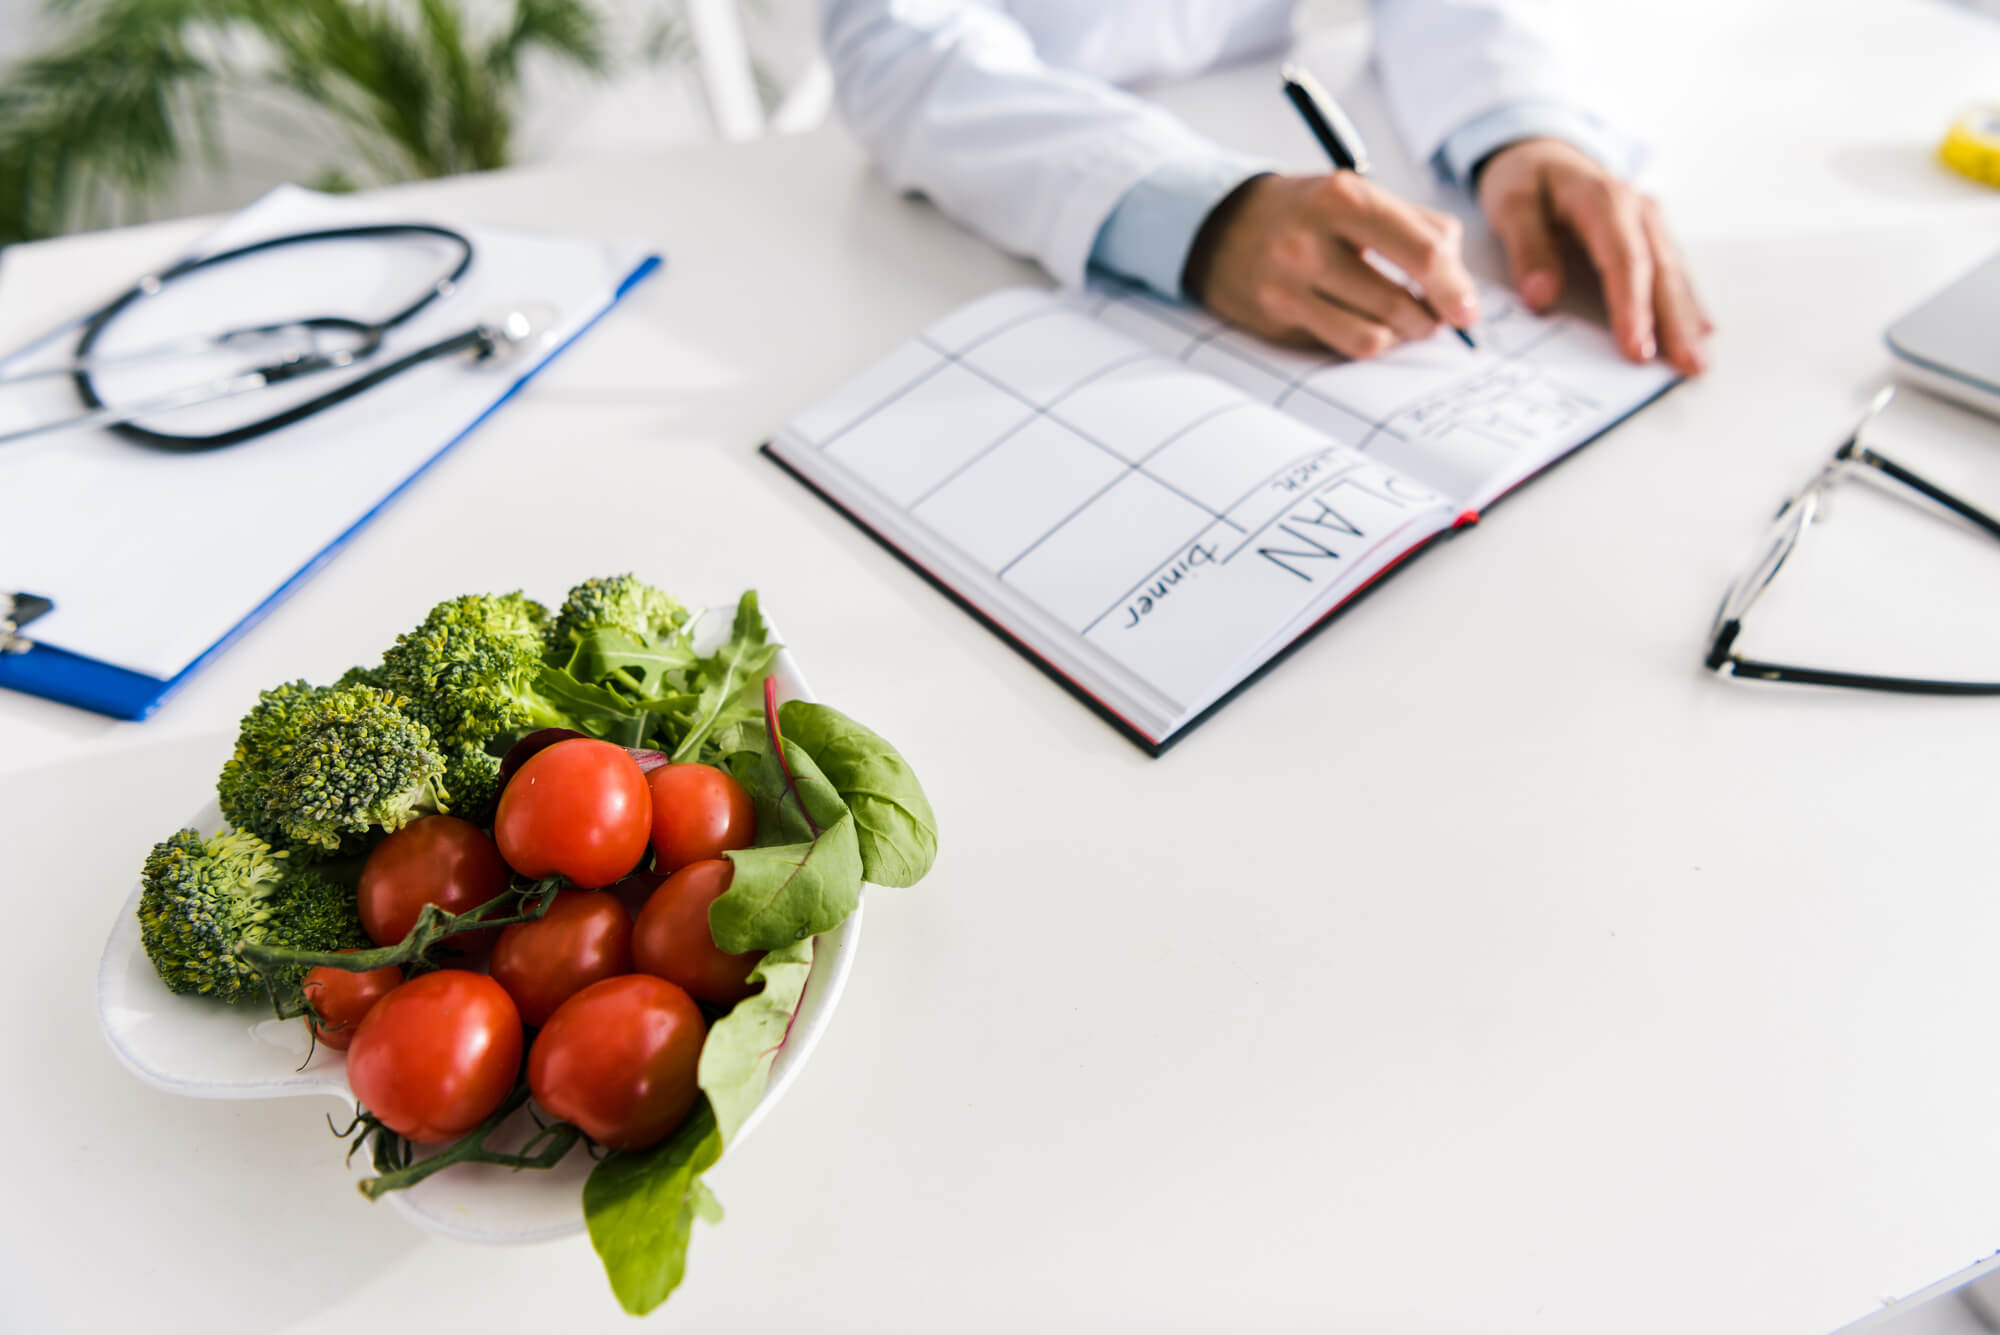 A dietician writes in a notebook near a bowl of vegetables. Scientists are studying the connection between low testosterone and inflammatory foods.